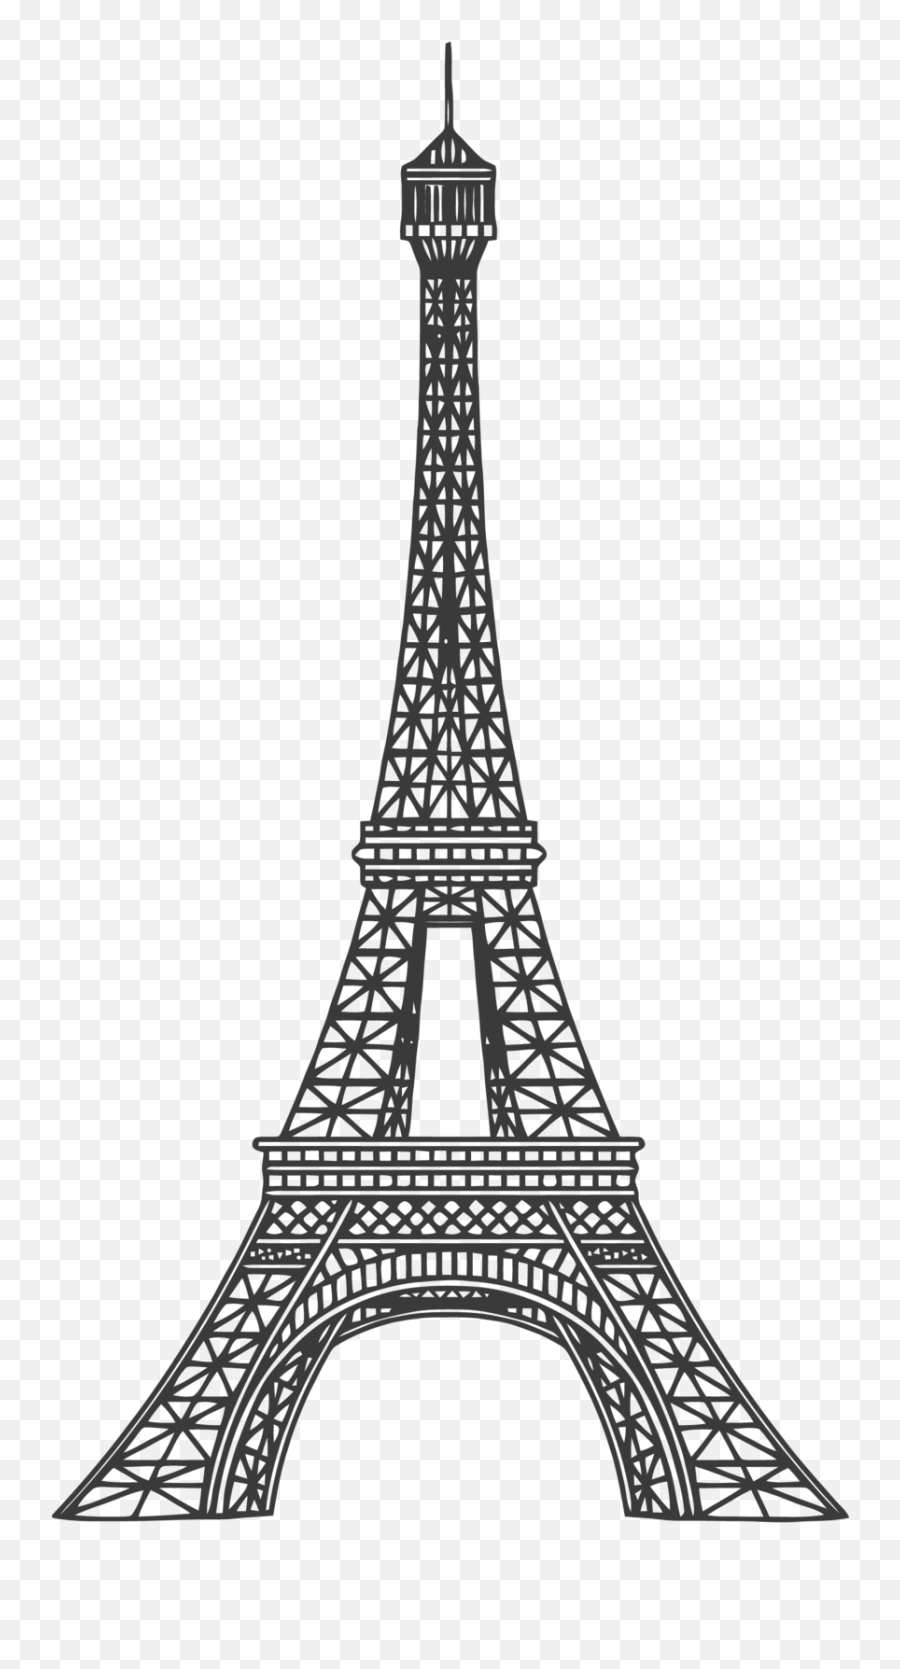 Eiffel Tower Png Images Free Download - Clip Art Eiffel Tower Emoji,Eiffel Tower Emoji